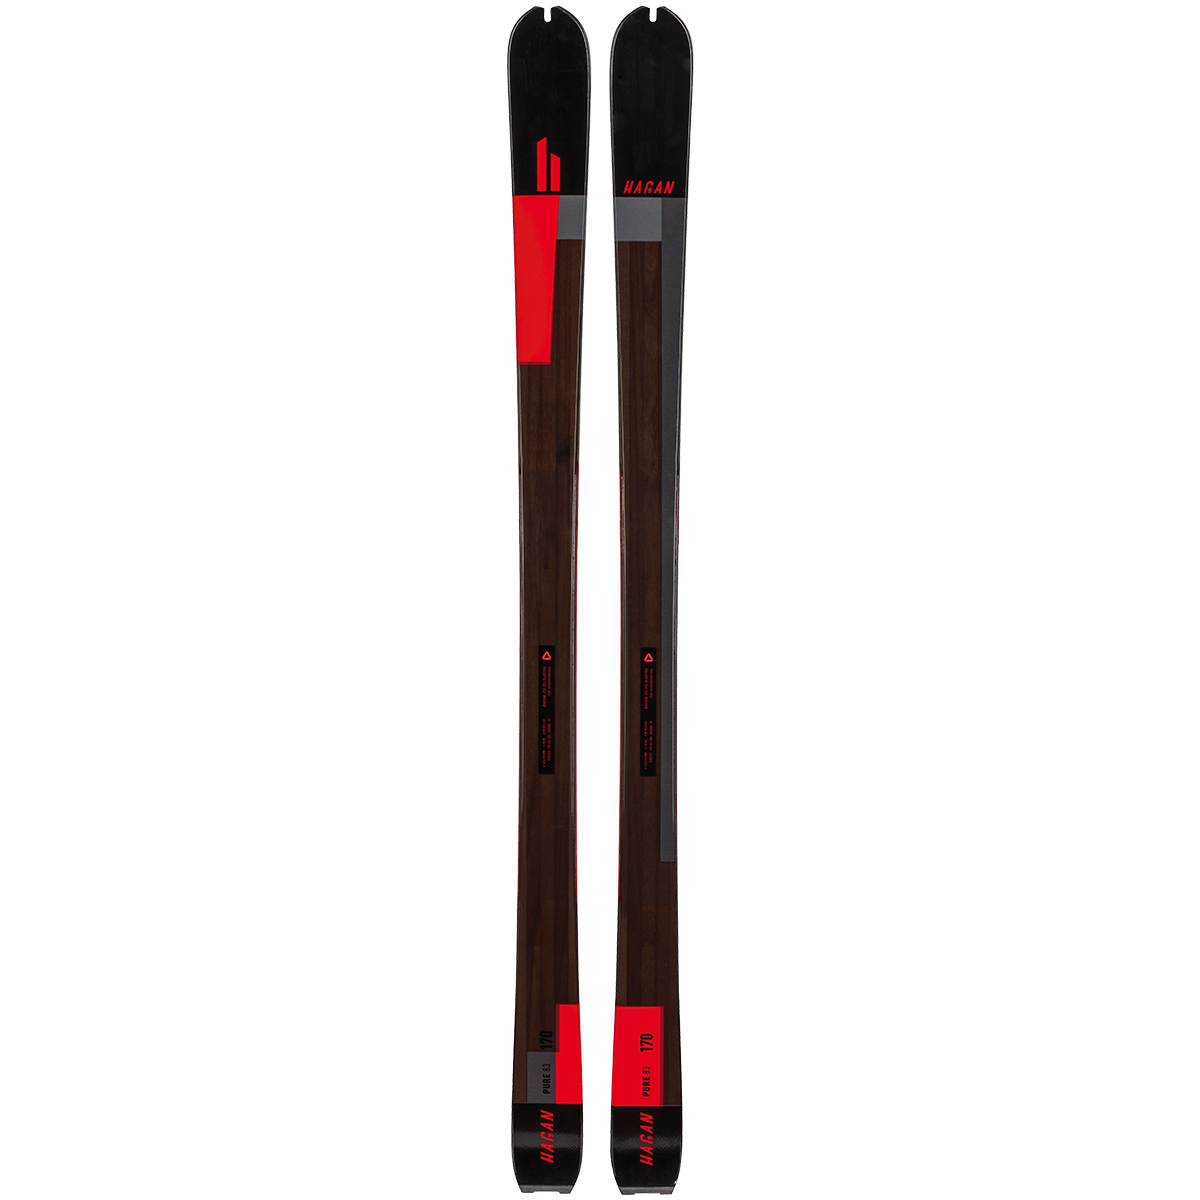 Pure 83, Skis - Hagan Ski Mountaineering Alpine Ski Touring Backcountry Gear